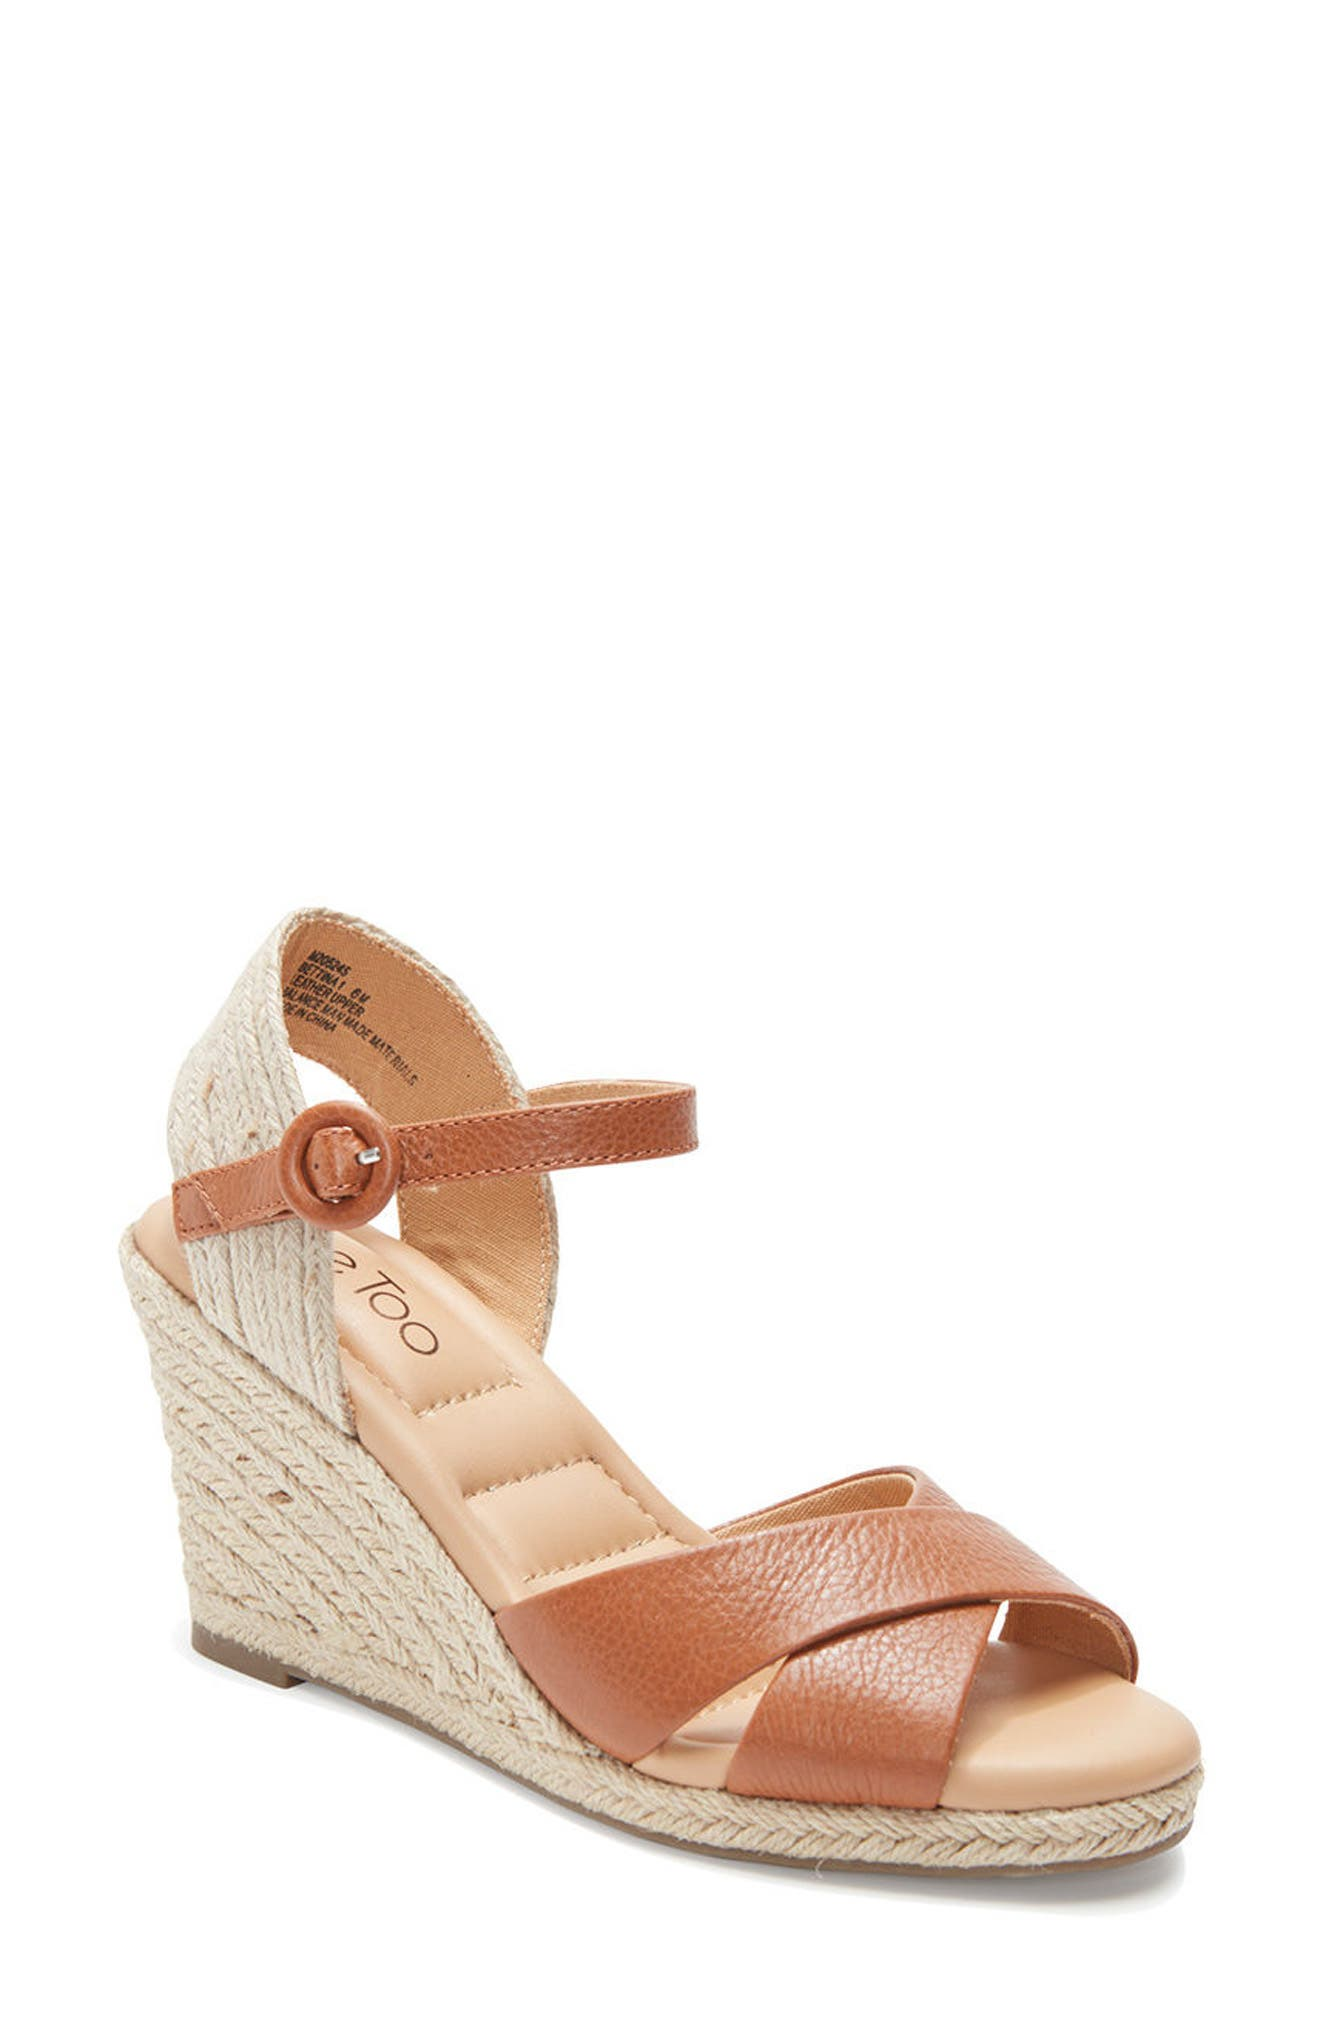 Bettina Espadrille Wedge Sandal,                         Main,                         color, New Luggage Leather